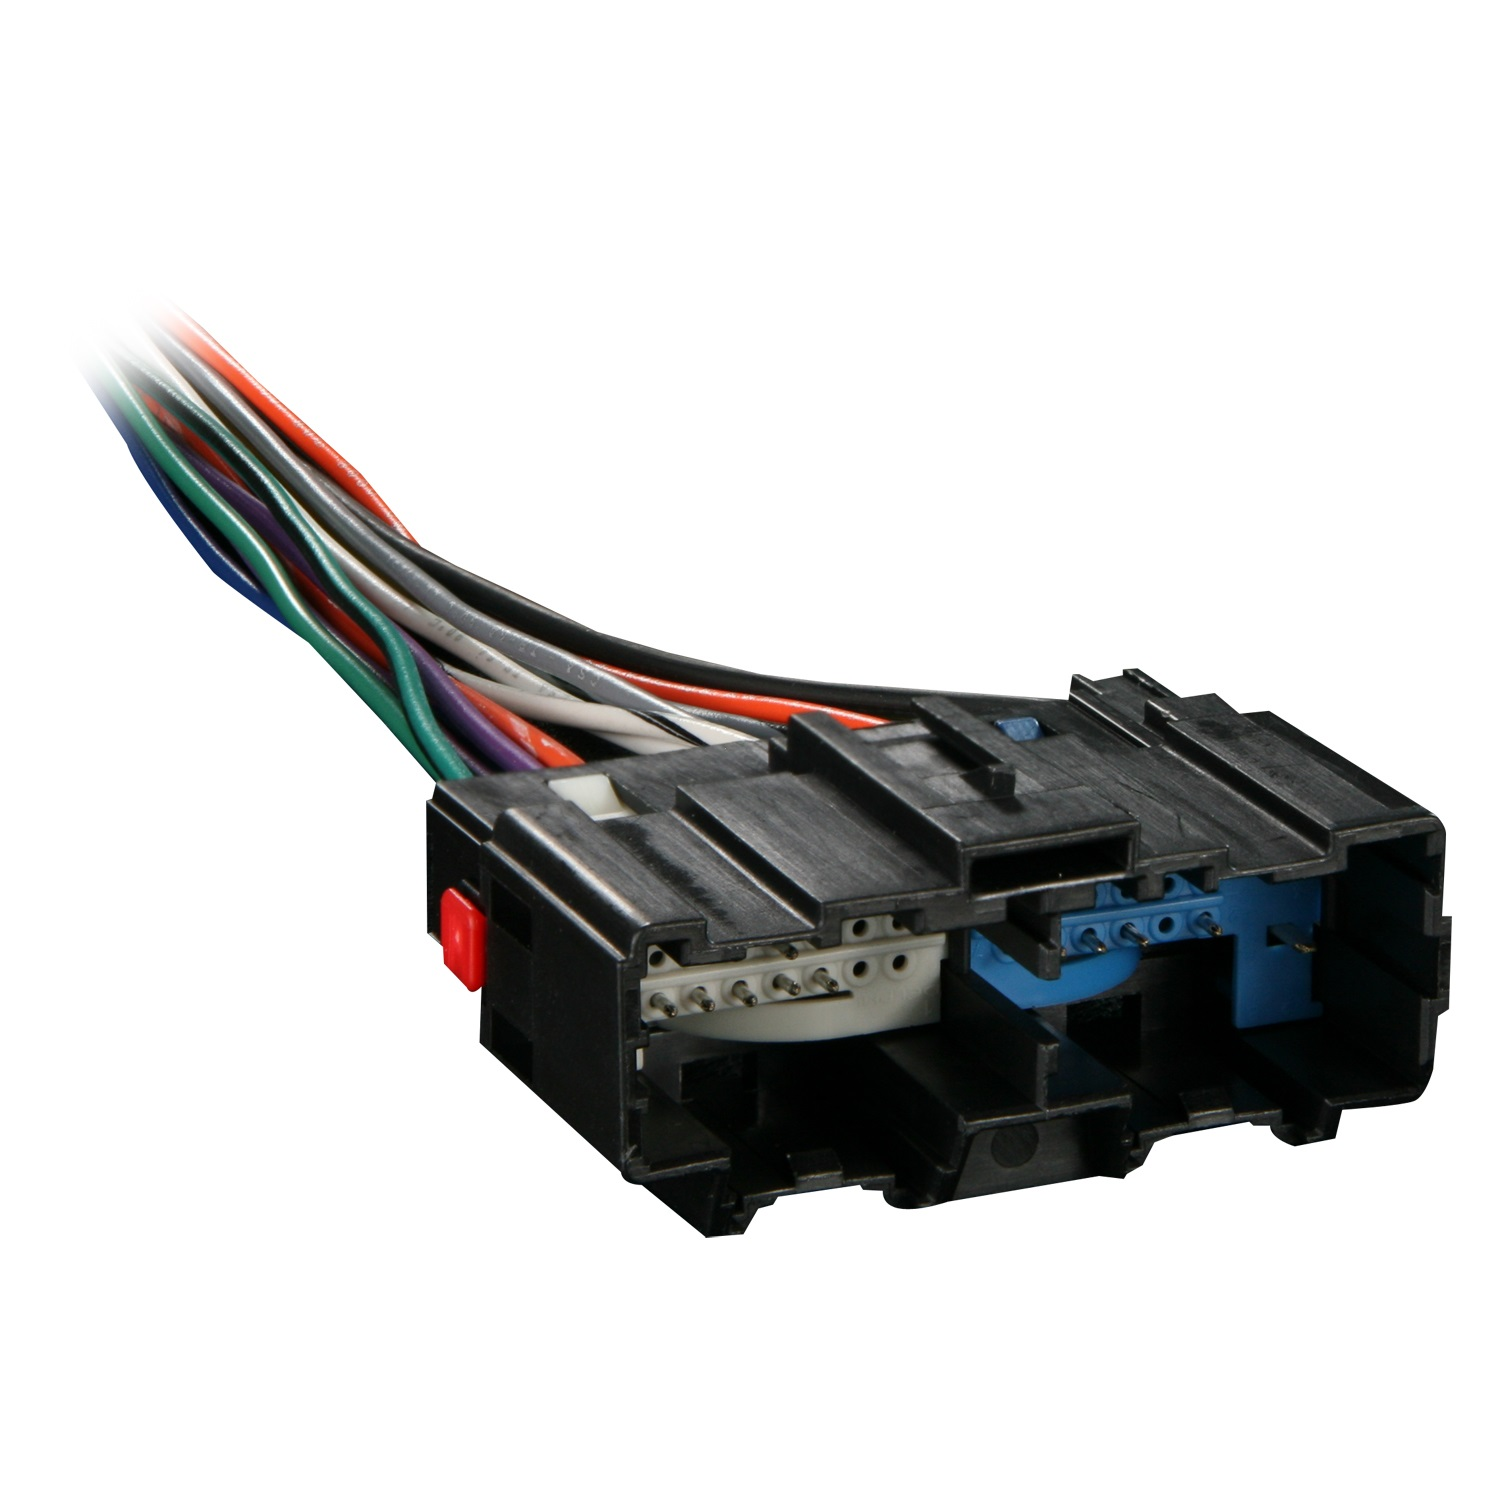 Metra Electronics 70 2104 Turbowire Radio Wiring Harness Product